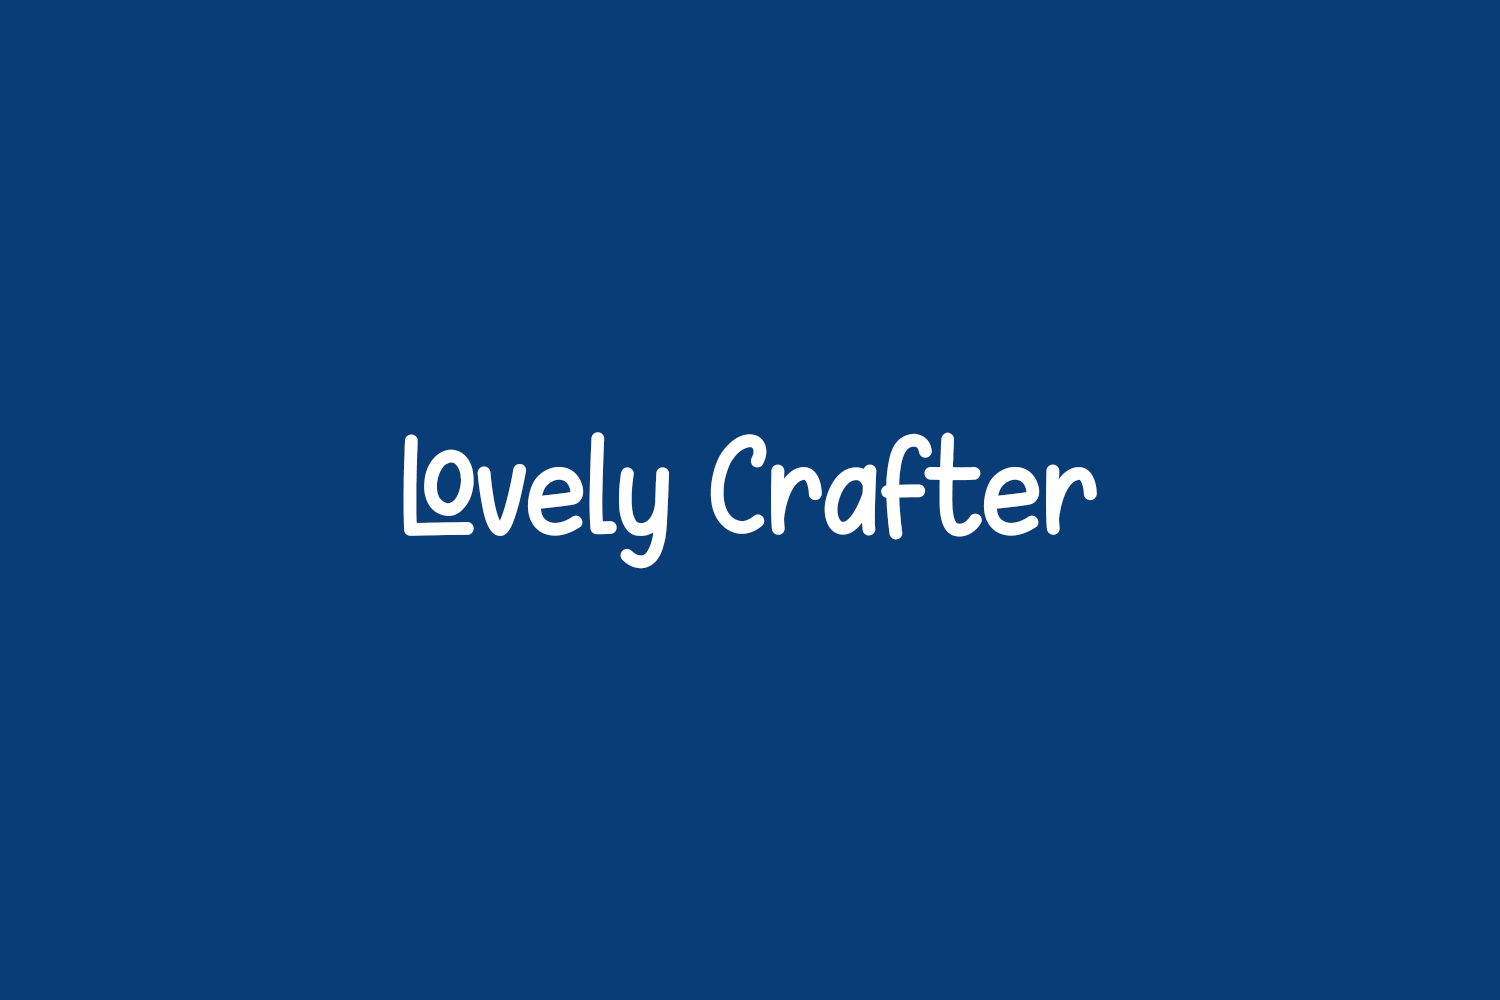 Lovely Crafter Free Font